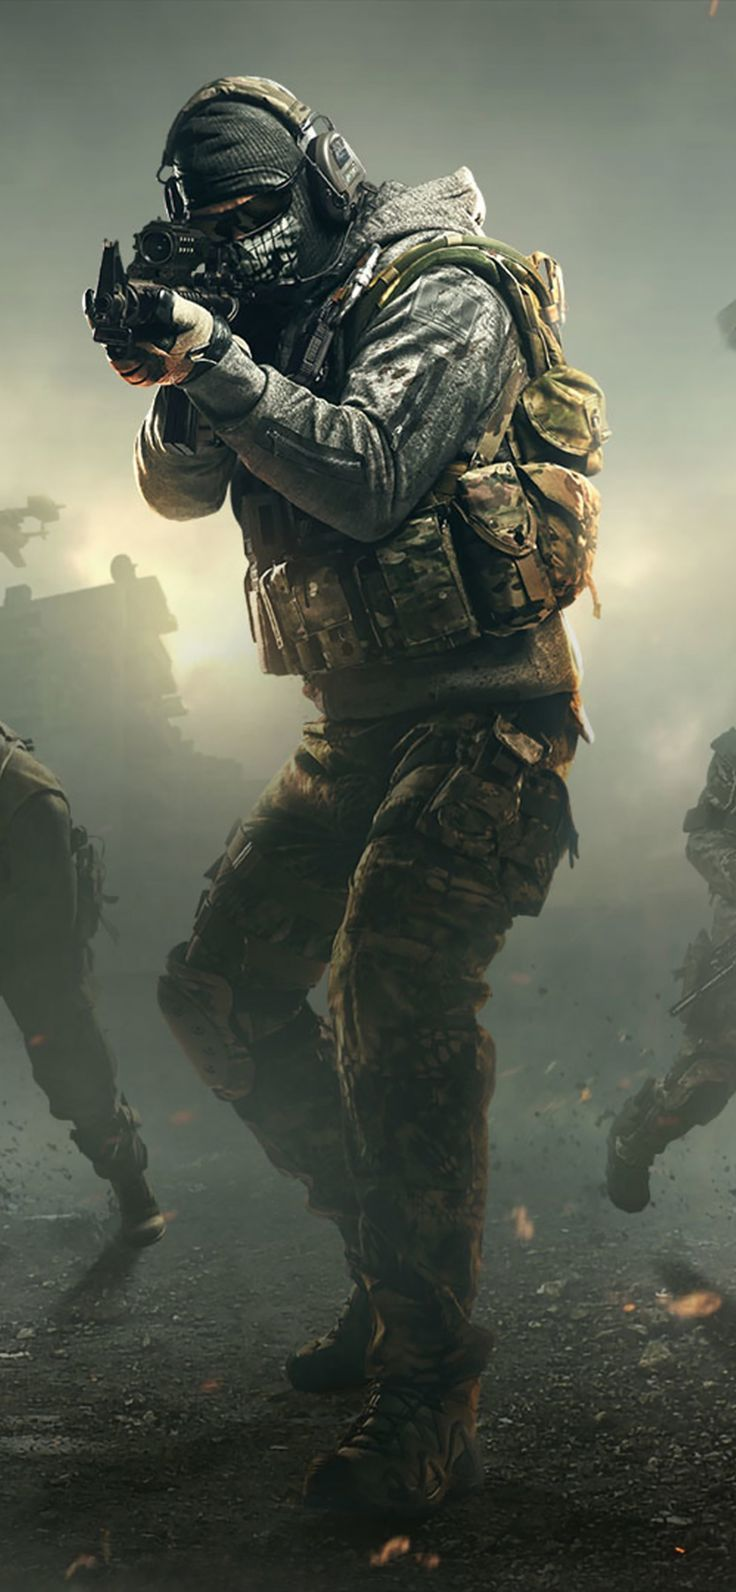 Call Of Duty Mobile 2019 Iphone 11 Pro Max Wallpaper Free Pattern And Tutorials Callofdutym Call Of Duty Call Of Duty Ghosts Army Wallpaper